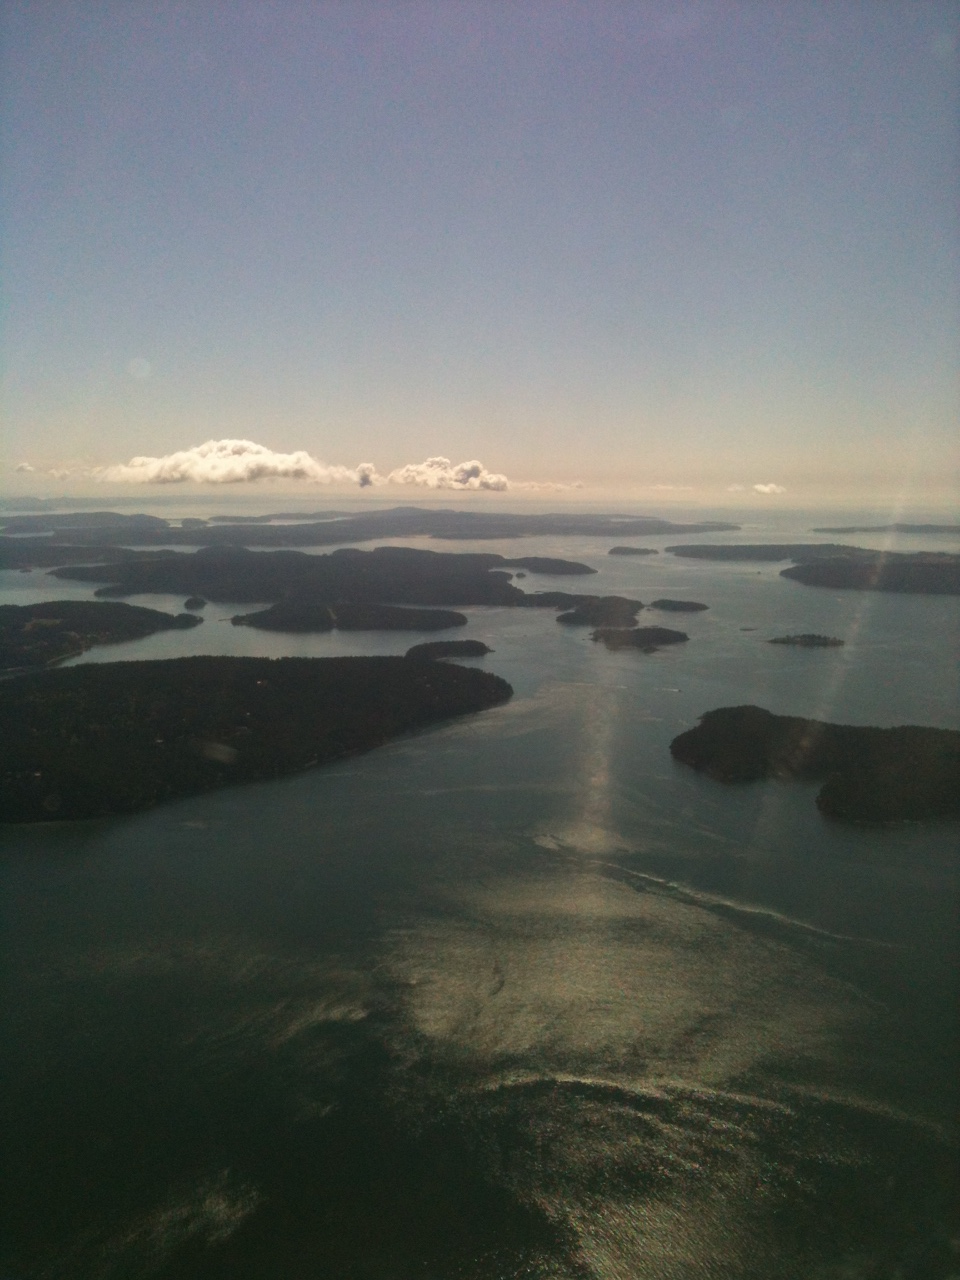 Flying southward above the San Juan Archipelago, Jones Island on the right, Orcas Island on the left.